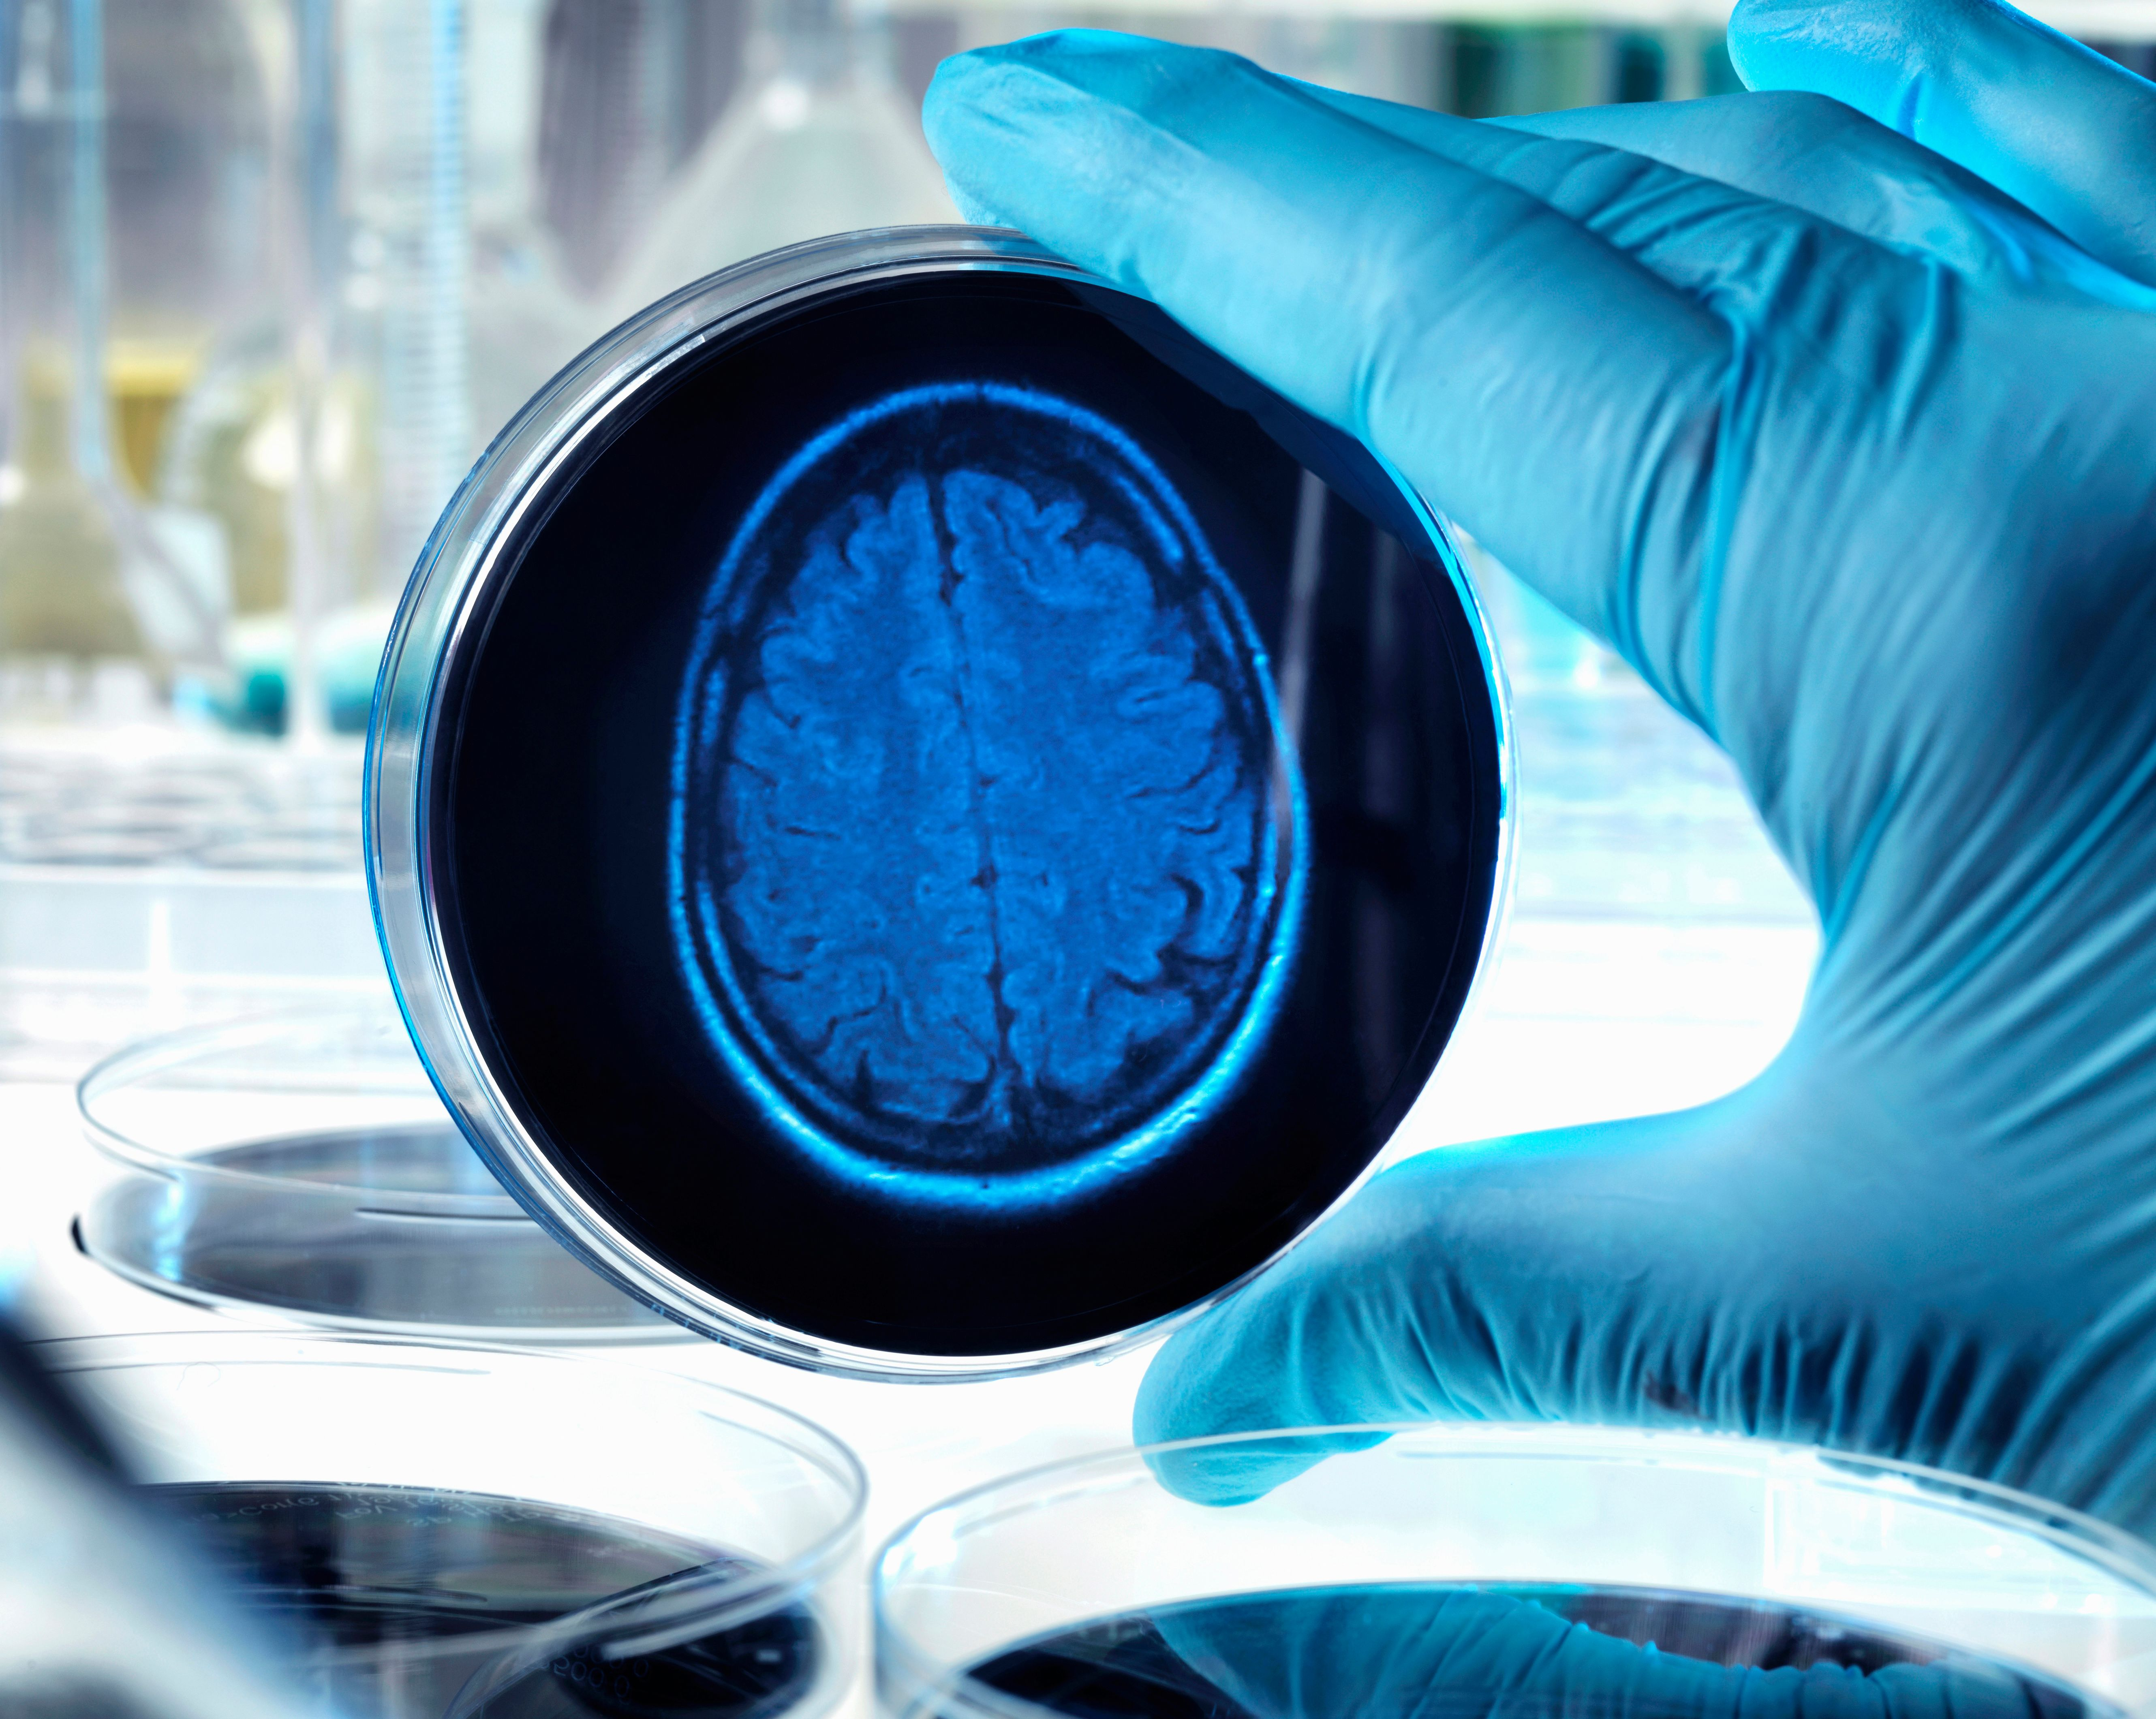 A scientist looks at a brain scan inside a petri dish.